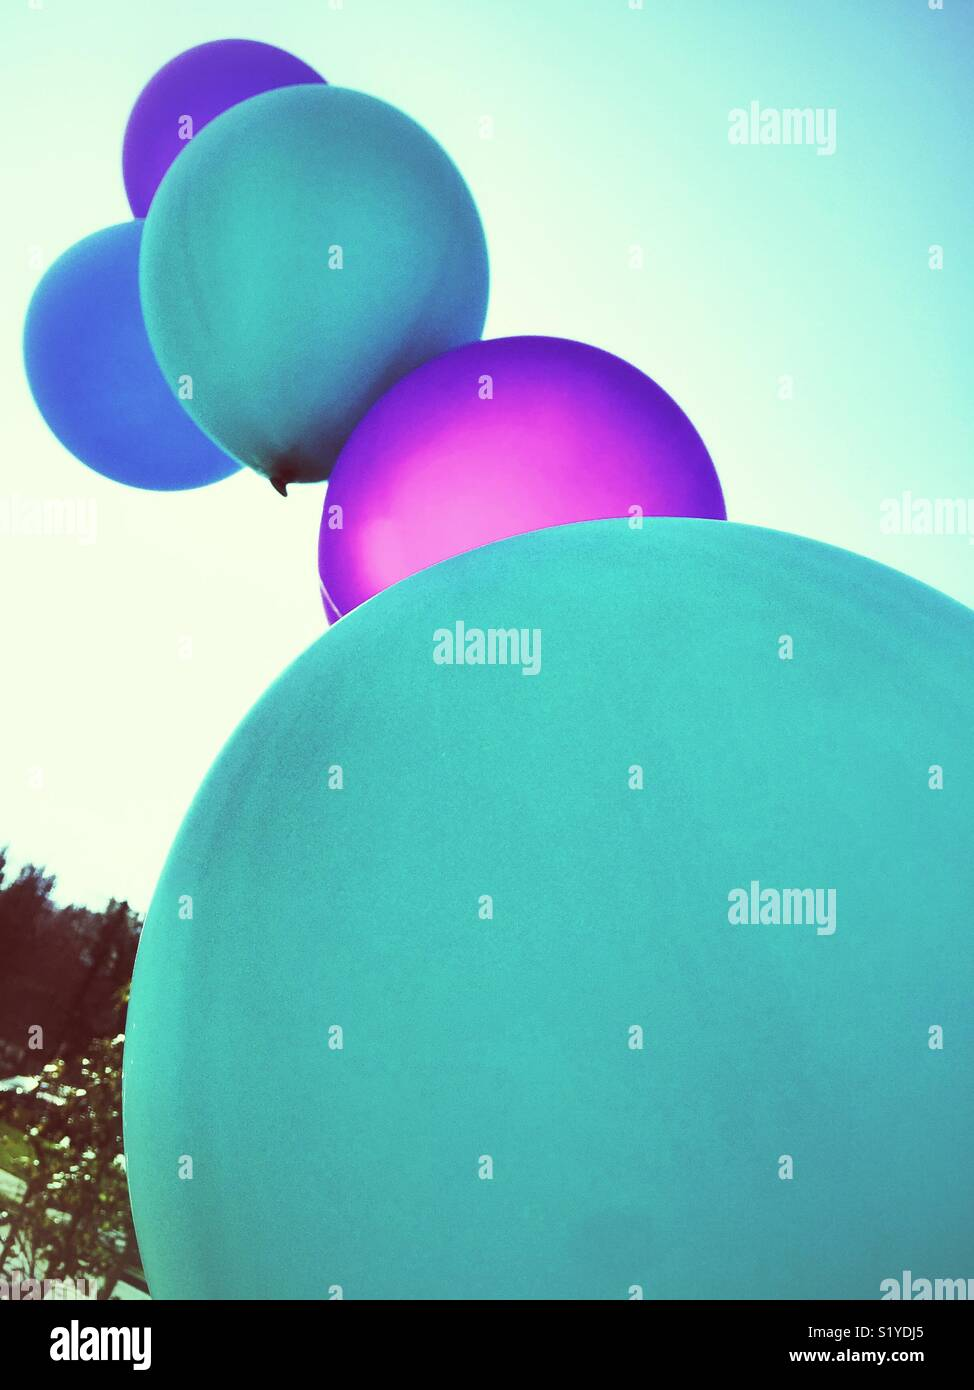 chain of balloons reaching to the sky - Stock Image